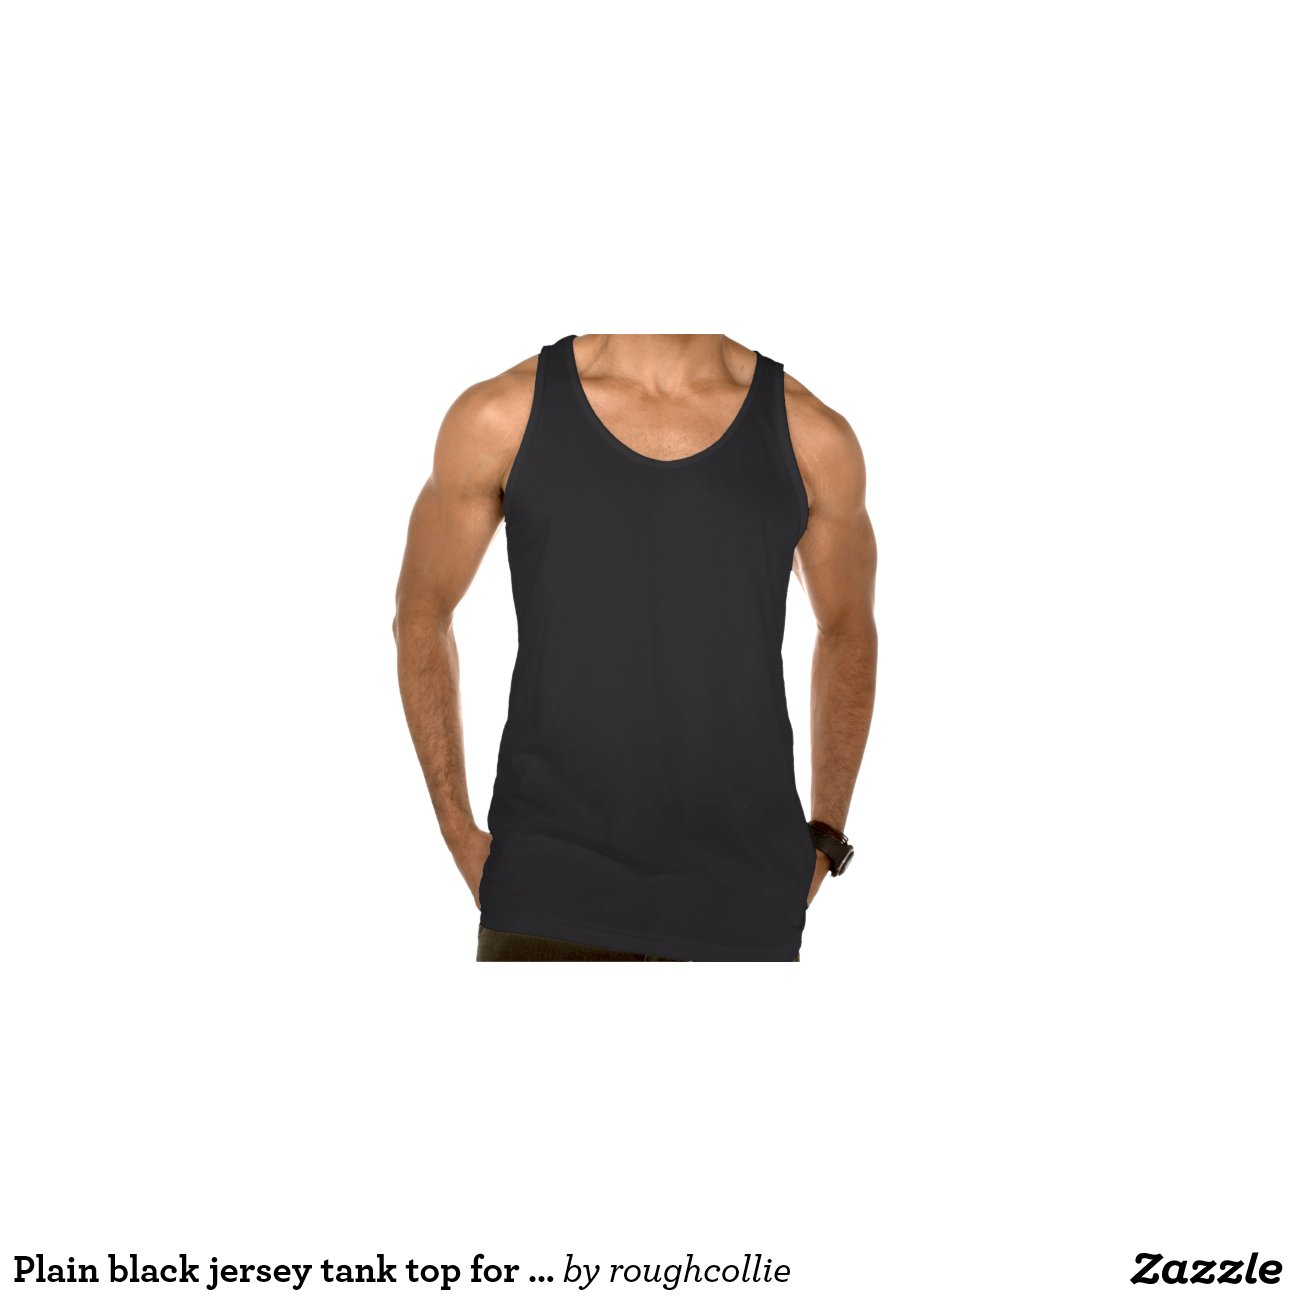 Explore the best selection of men's tank tops in a variety of designs at affordable prices at Old Navy. Get Back to the Basics in Style. Revamp your collection of essential sleeveless tees with our wide array of updated men's tank tops.